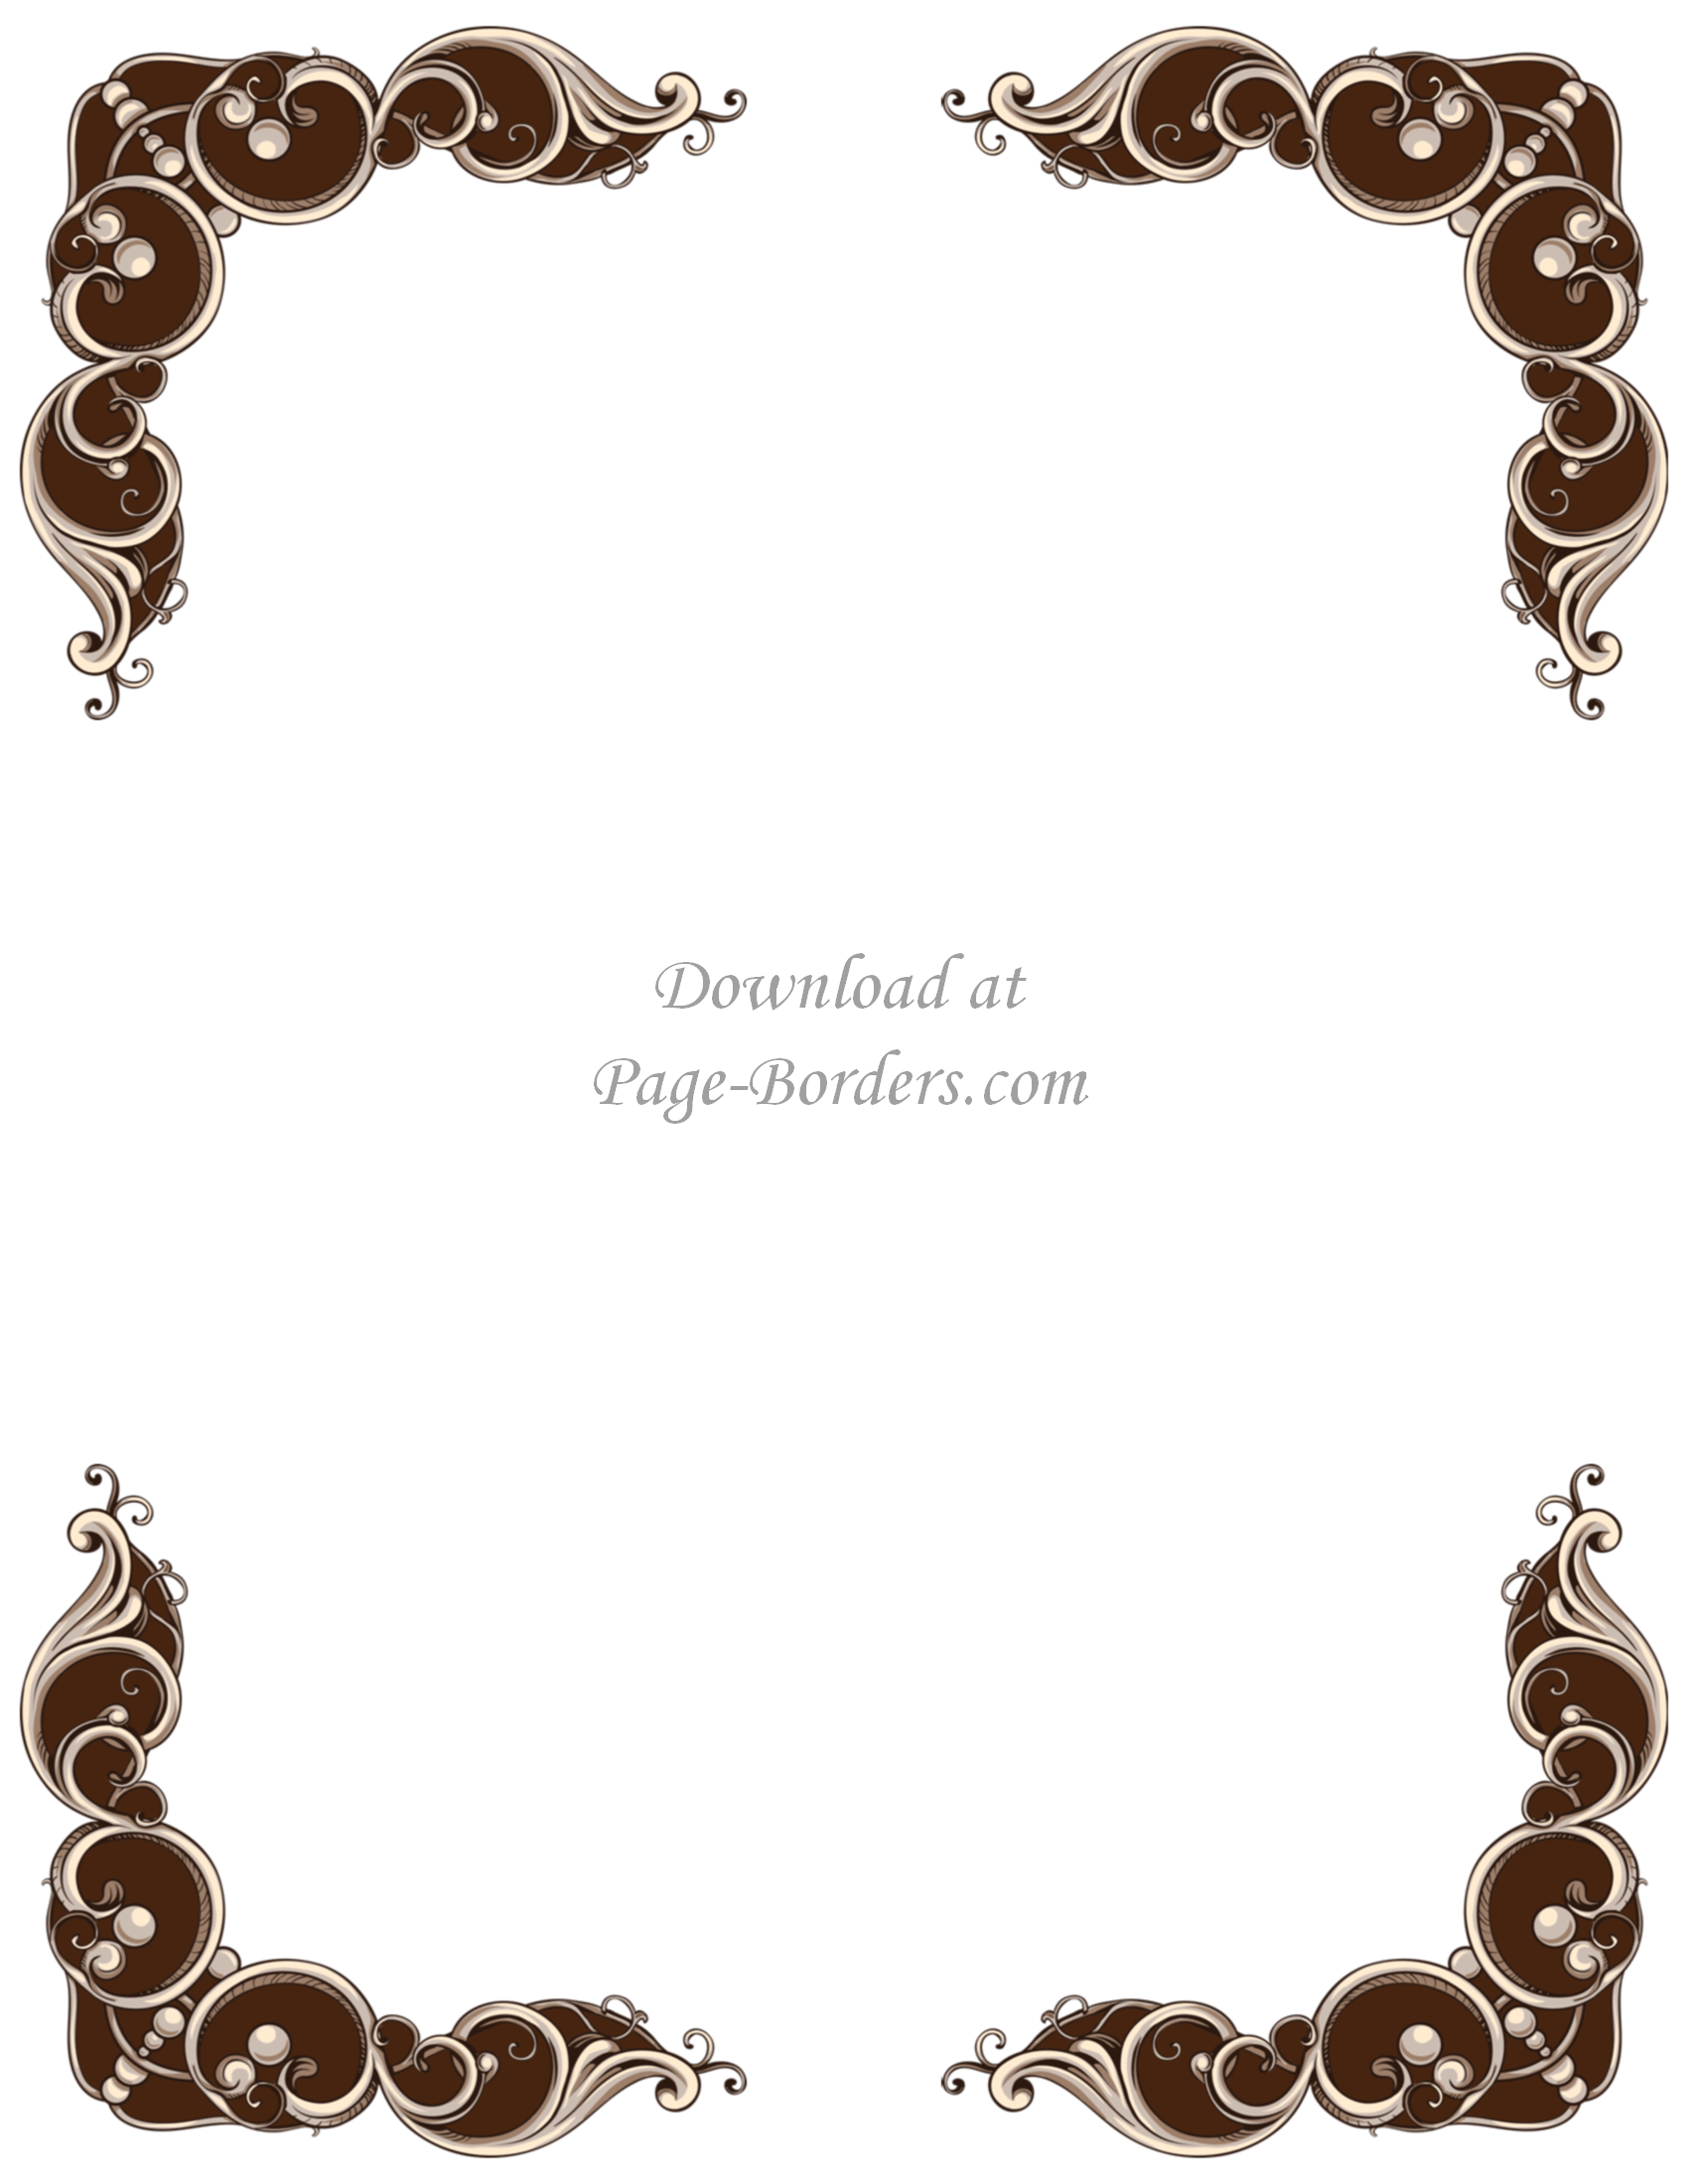 Vintage holiday border clipart graphic free stock Vintage Border | Free Instant Download | Personal ... graphic free stock